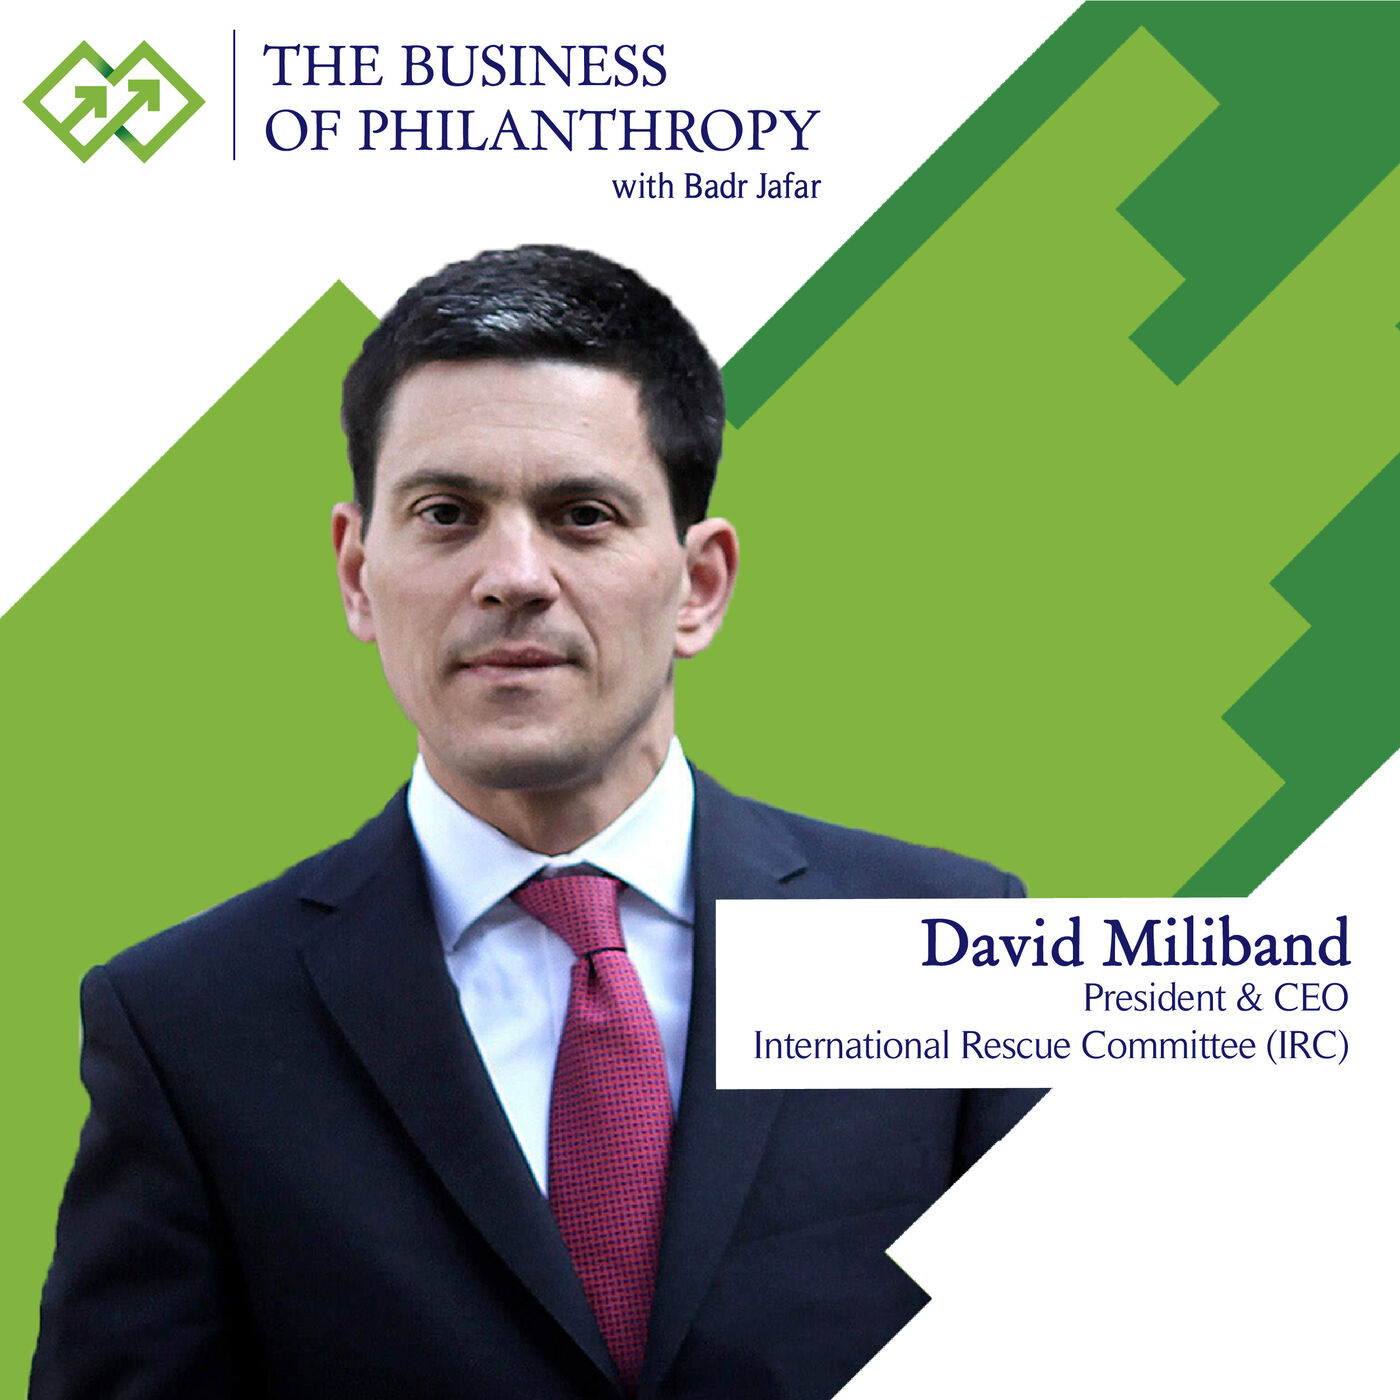 David Miliband; A Conversation with Badr Jafar